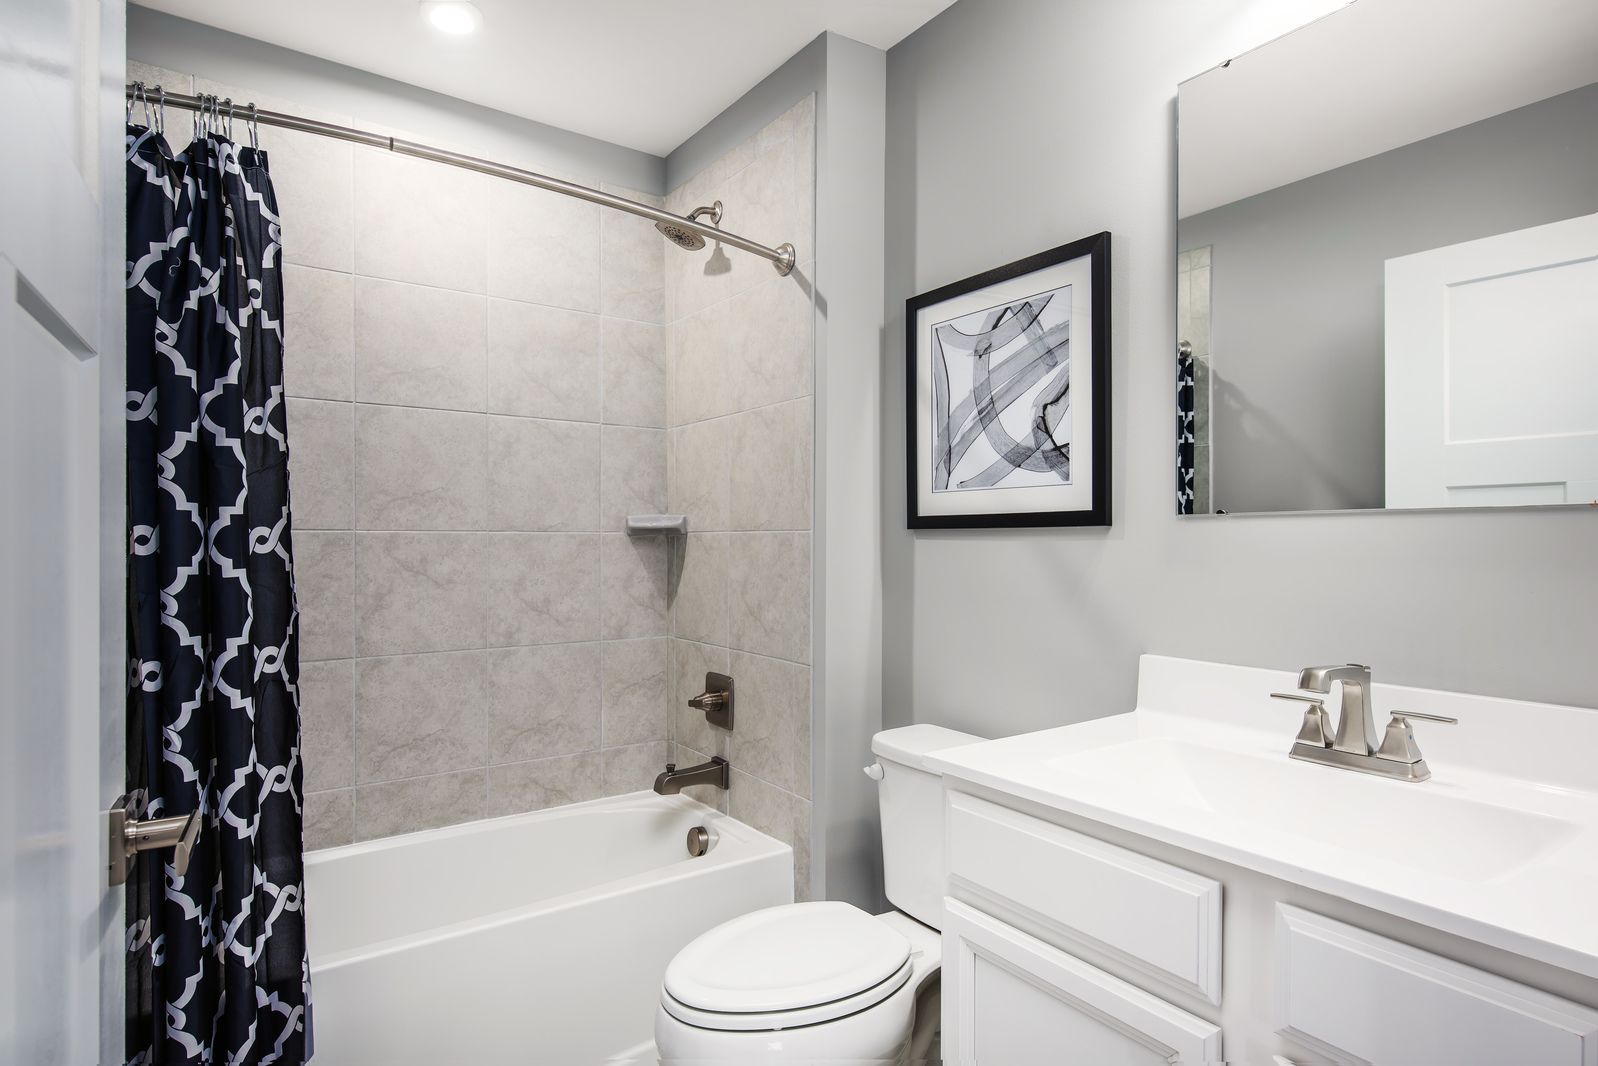 Bathroom featured in the Grand Bahama By Ryan Homes in Dover, DE